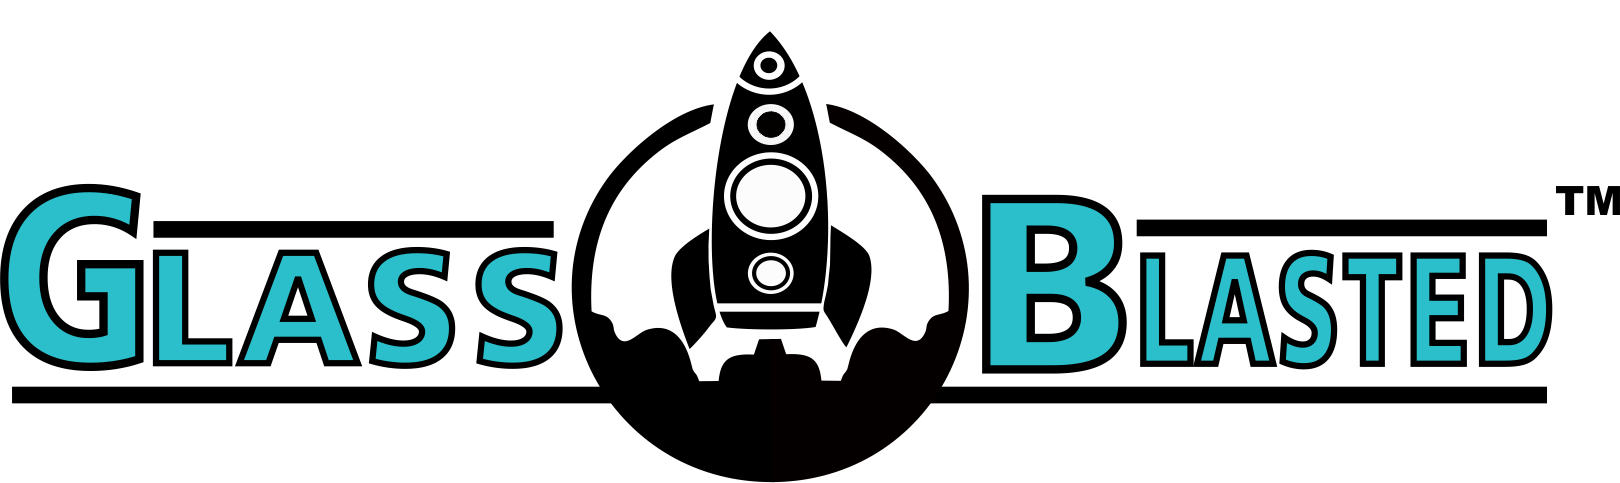 rocket-logo-blue-black.png